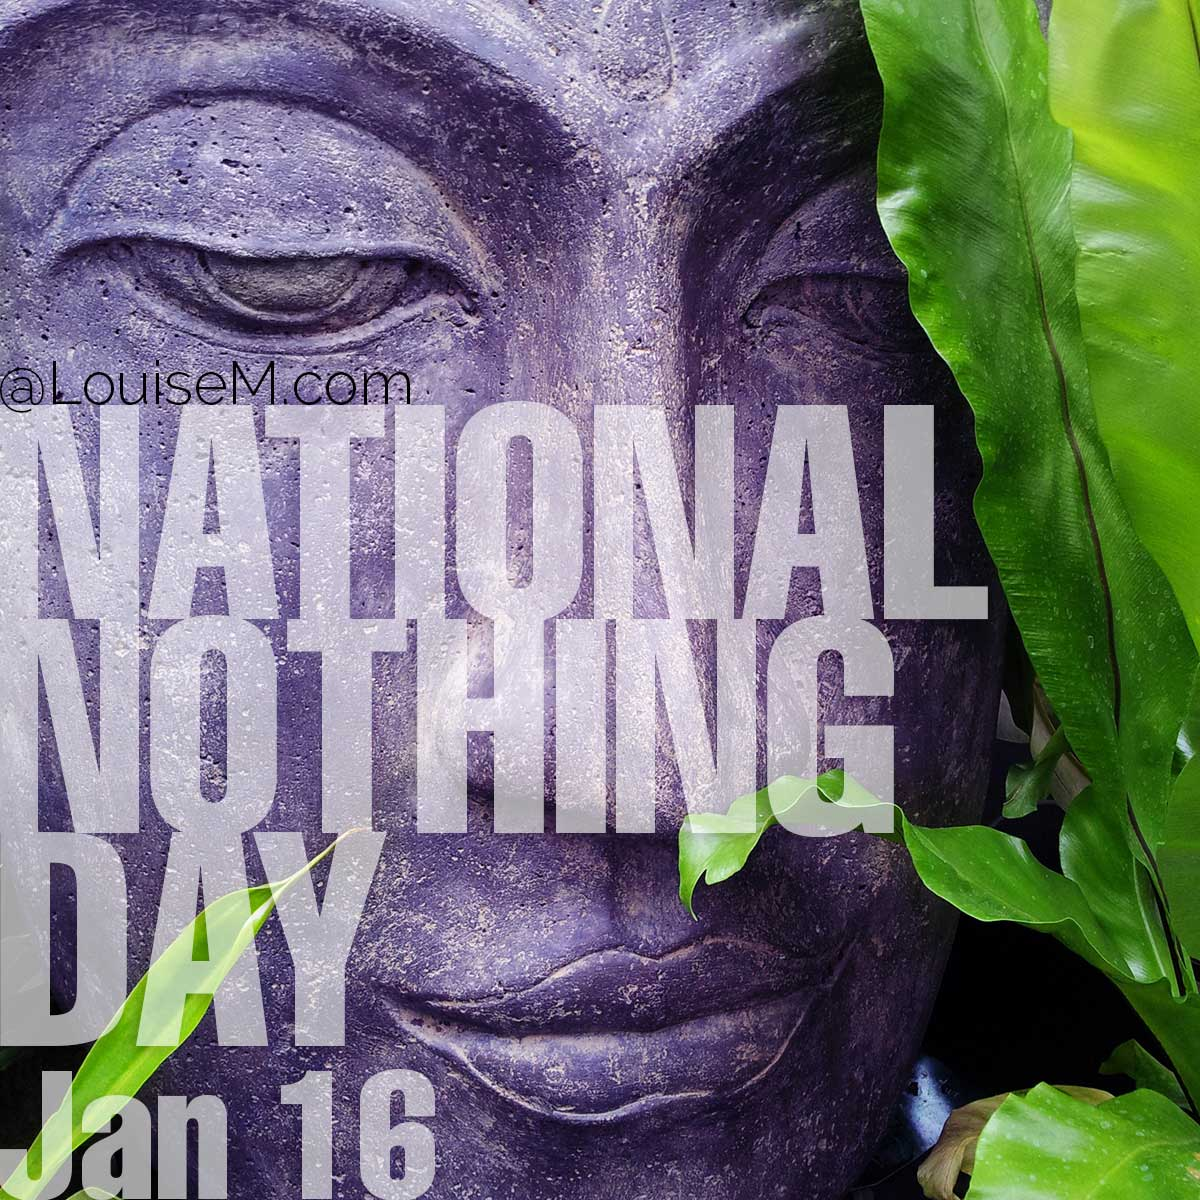 National Nothing Day text on photo of buddha statue.